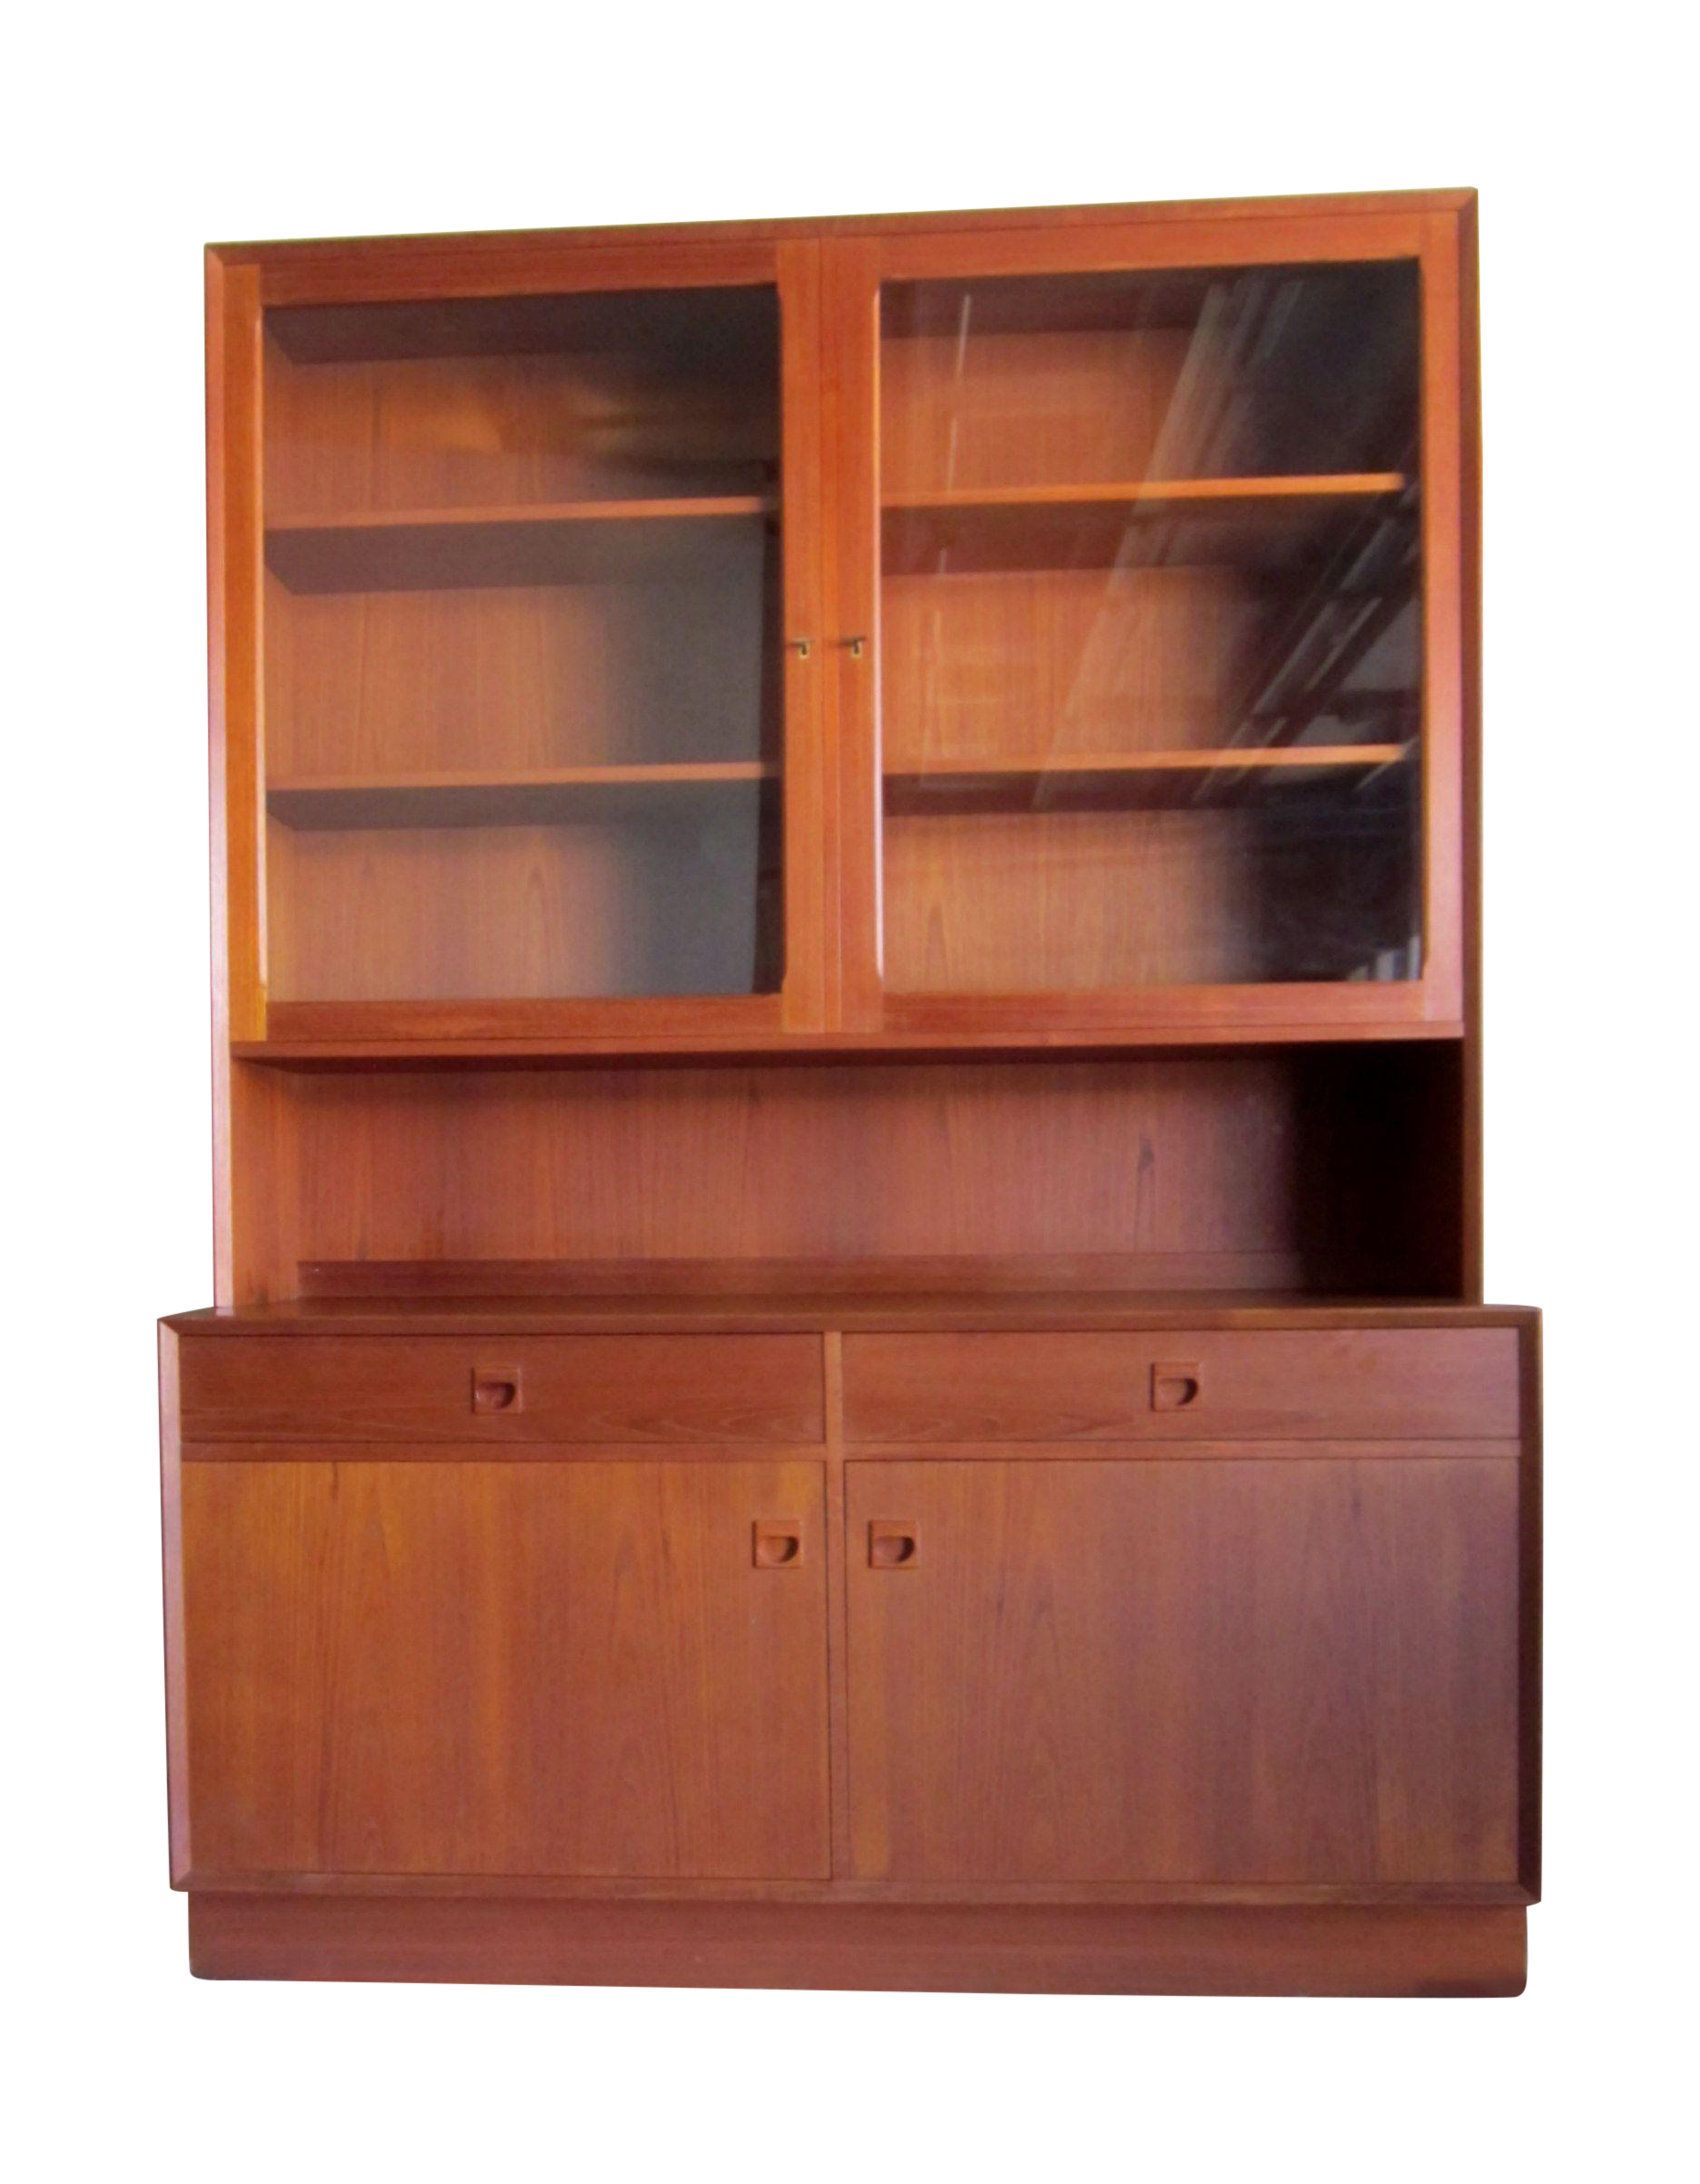 Shop China And Display Cabinets At Chairish The Design Lovers Marketplace For Best Vintage Used Furniture Decor Art